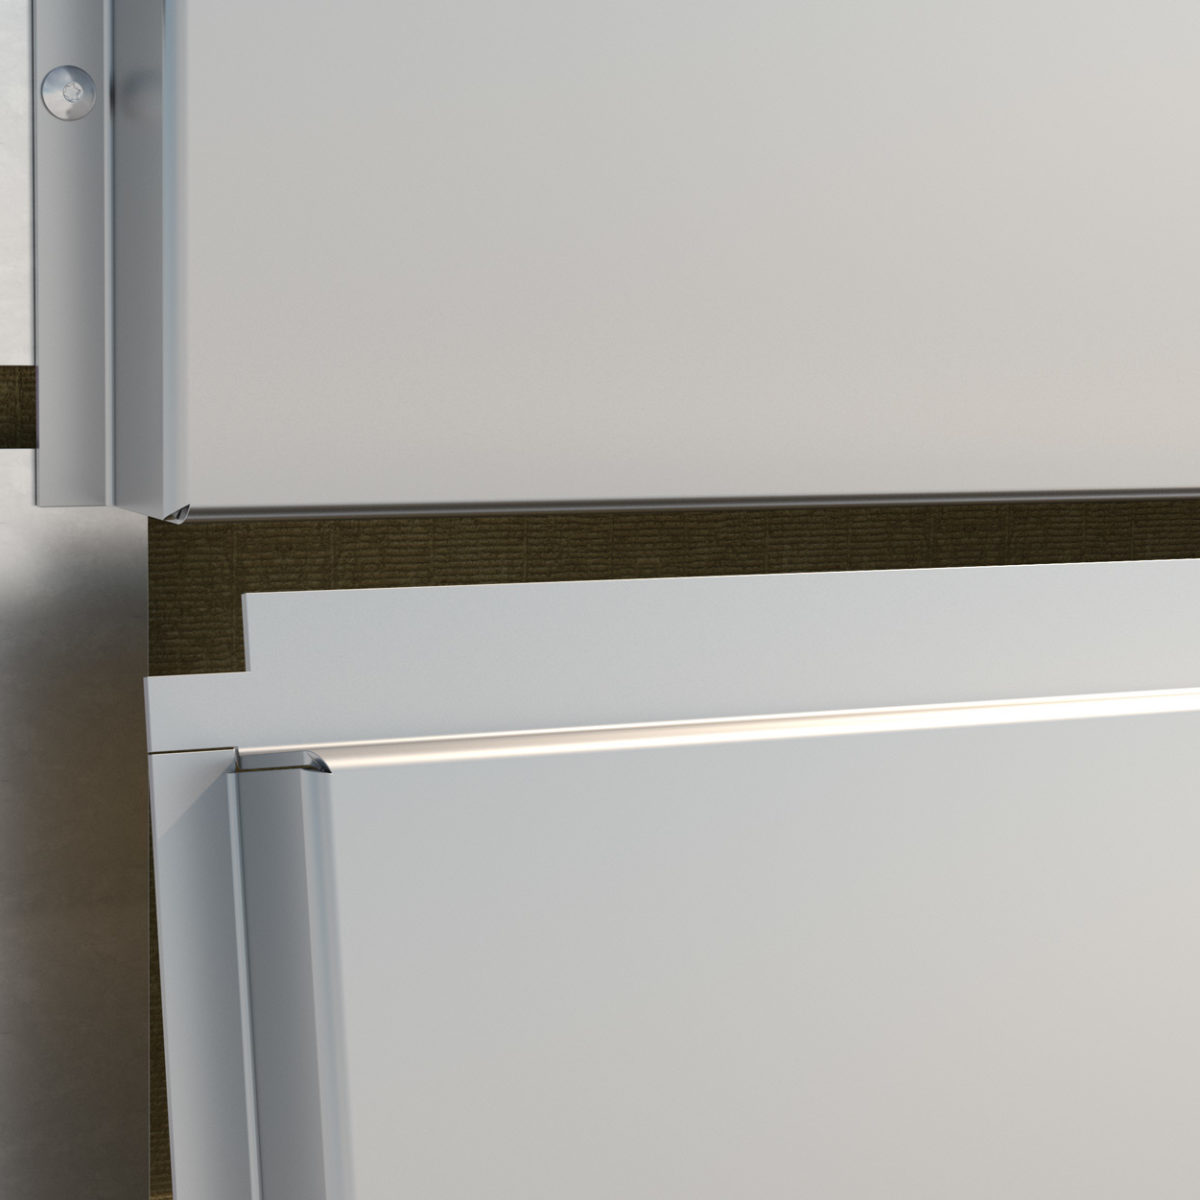 3D Model: See our Optima TFC rainscreen cladding system up close